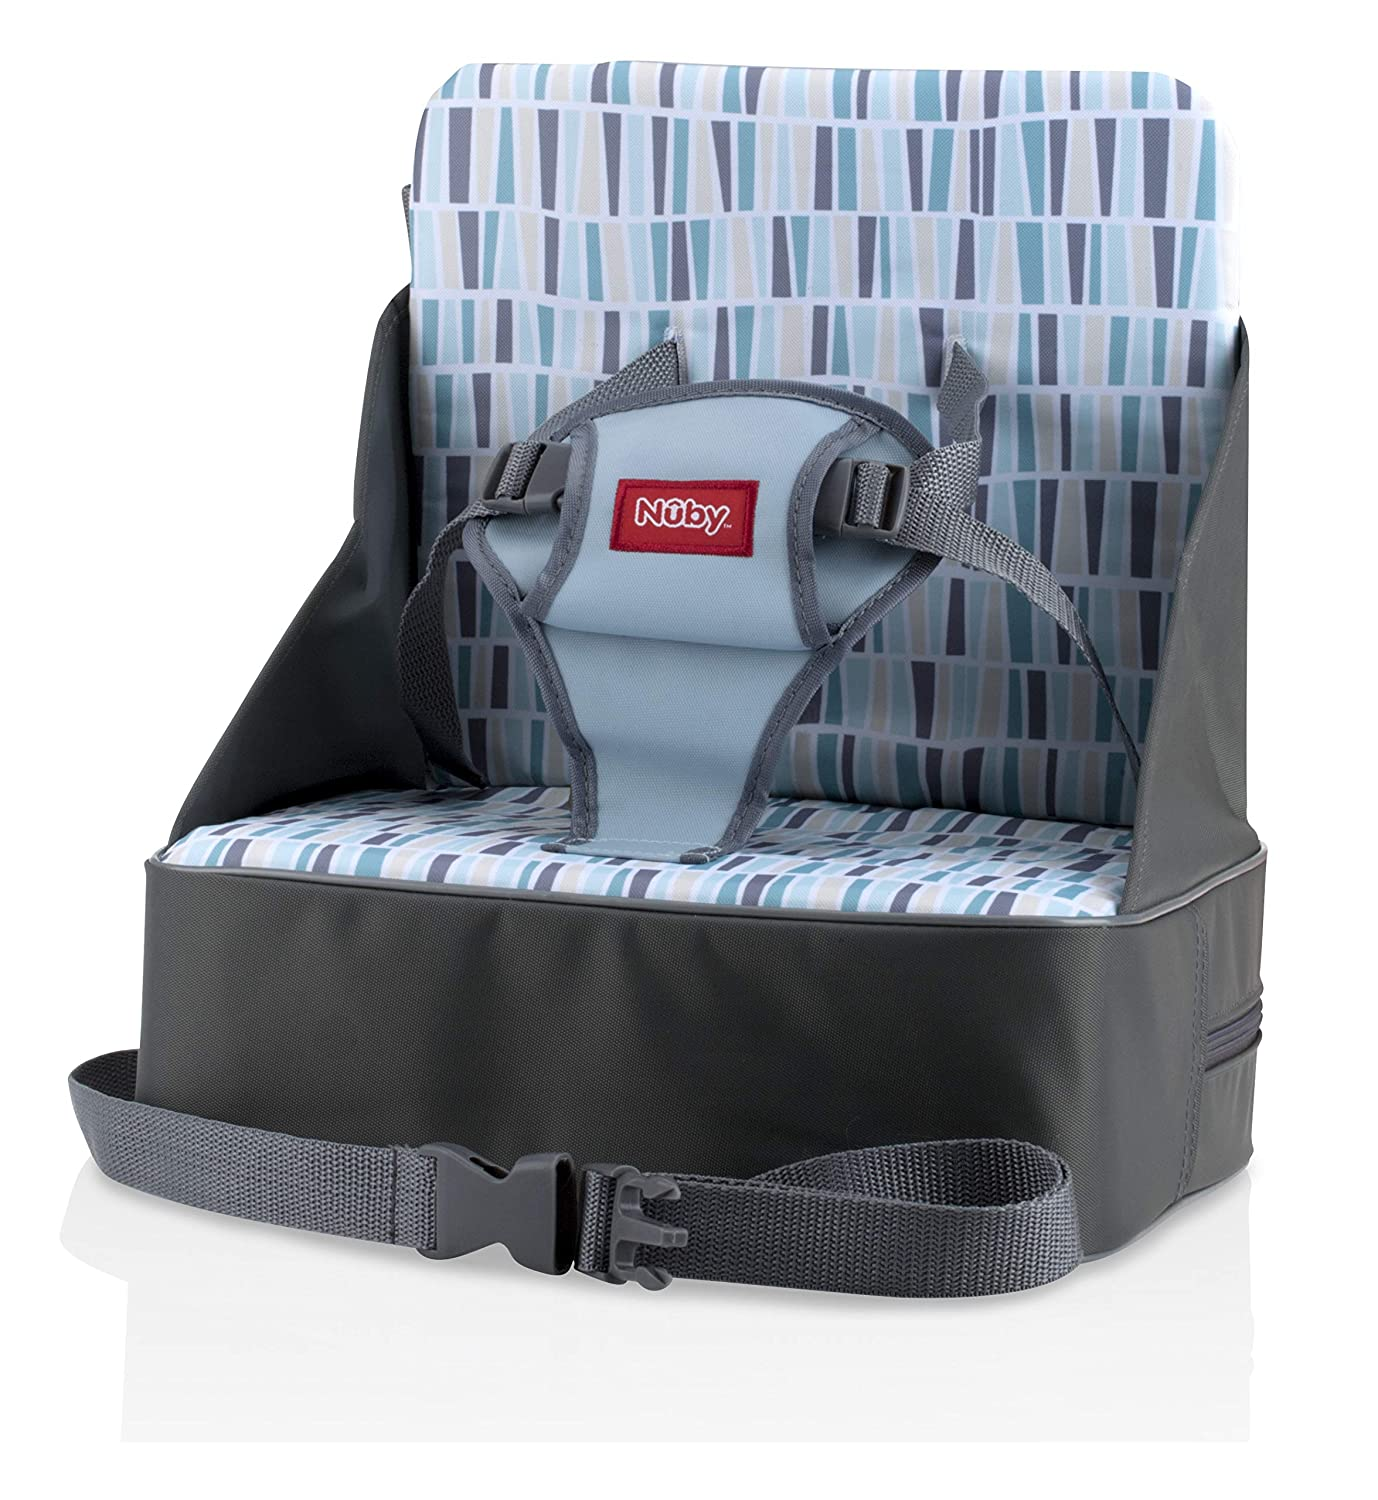 Nuby Easy Go Safety Lightweight High Chair Booster Seat, Great for Travel, Gray